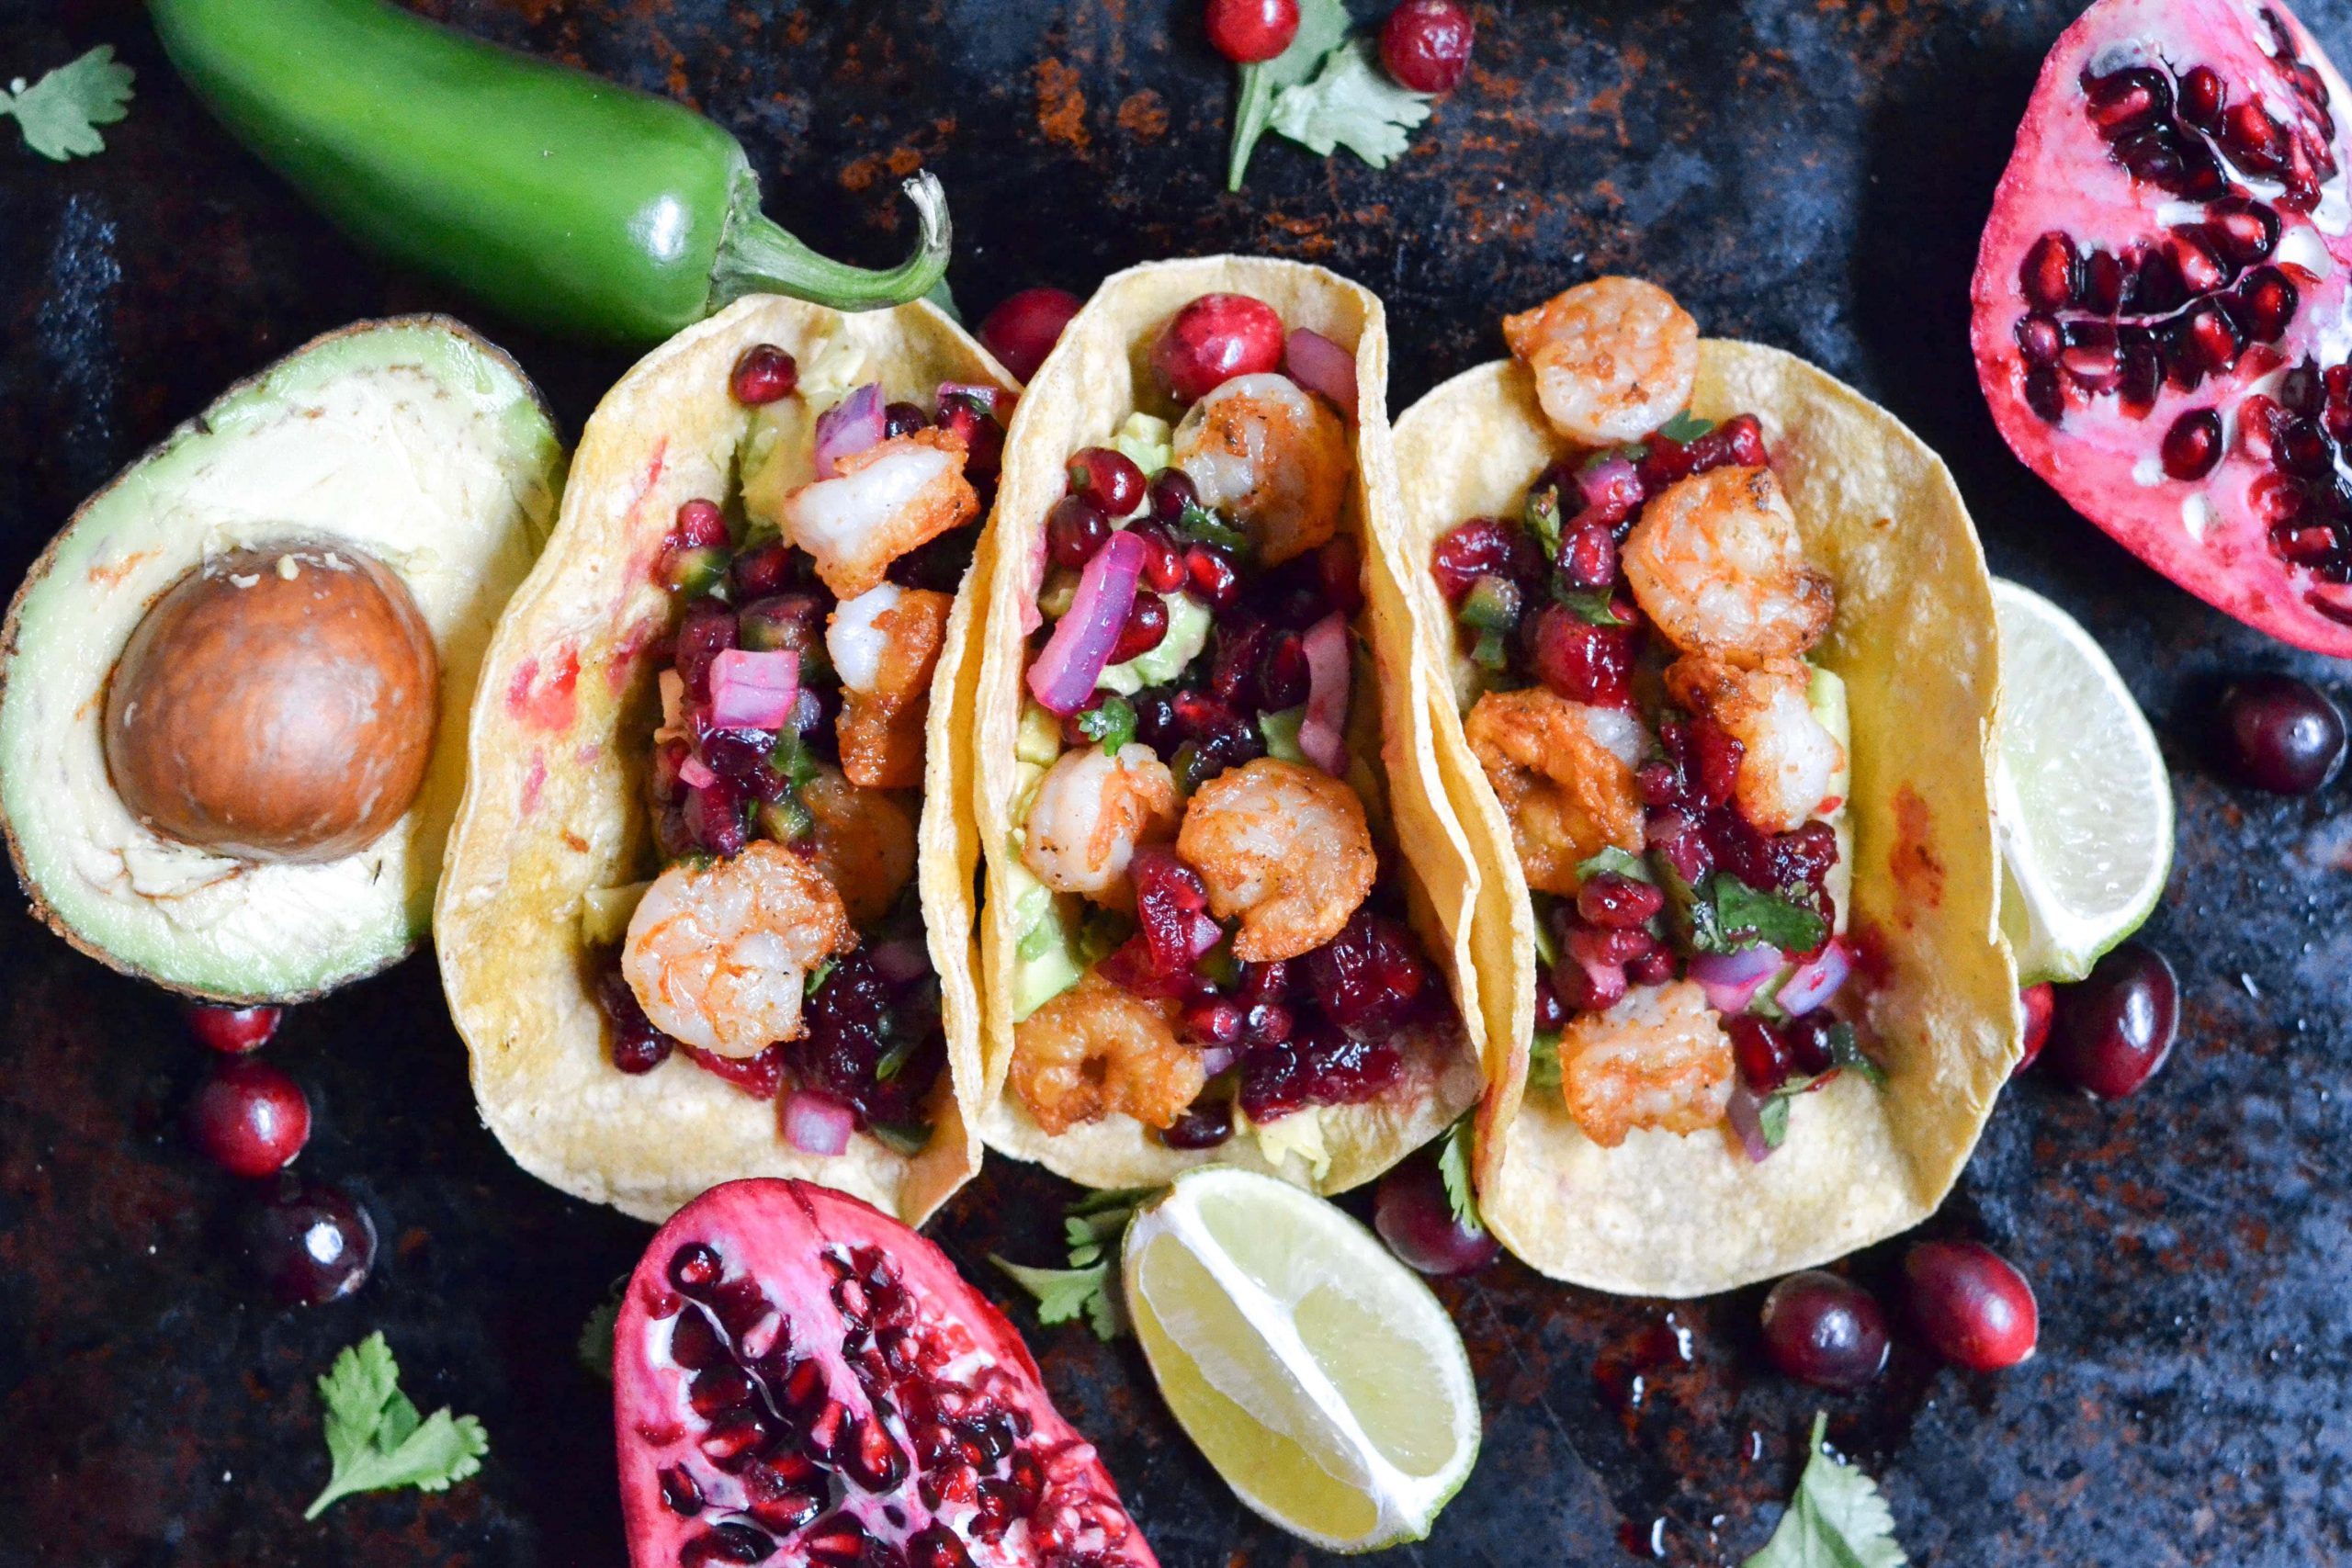 Three shrimp tacos on a baking sheet with pomegranate, avocados, and limes.